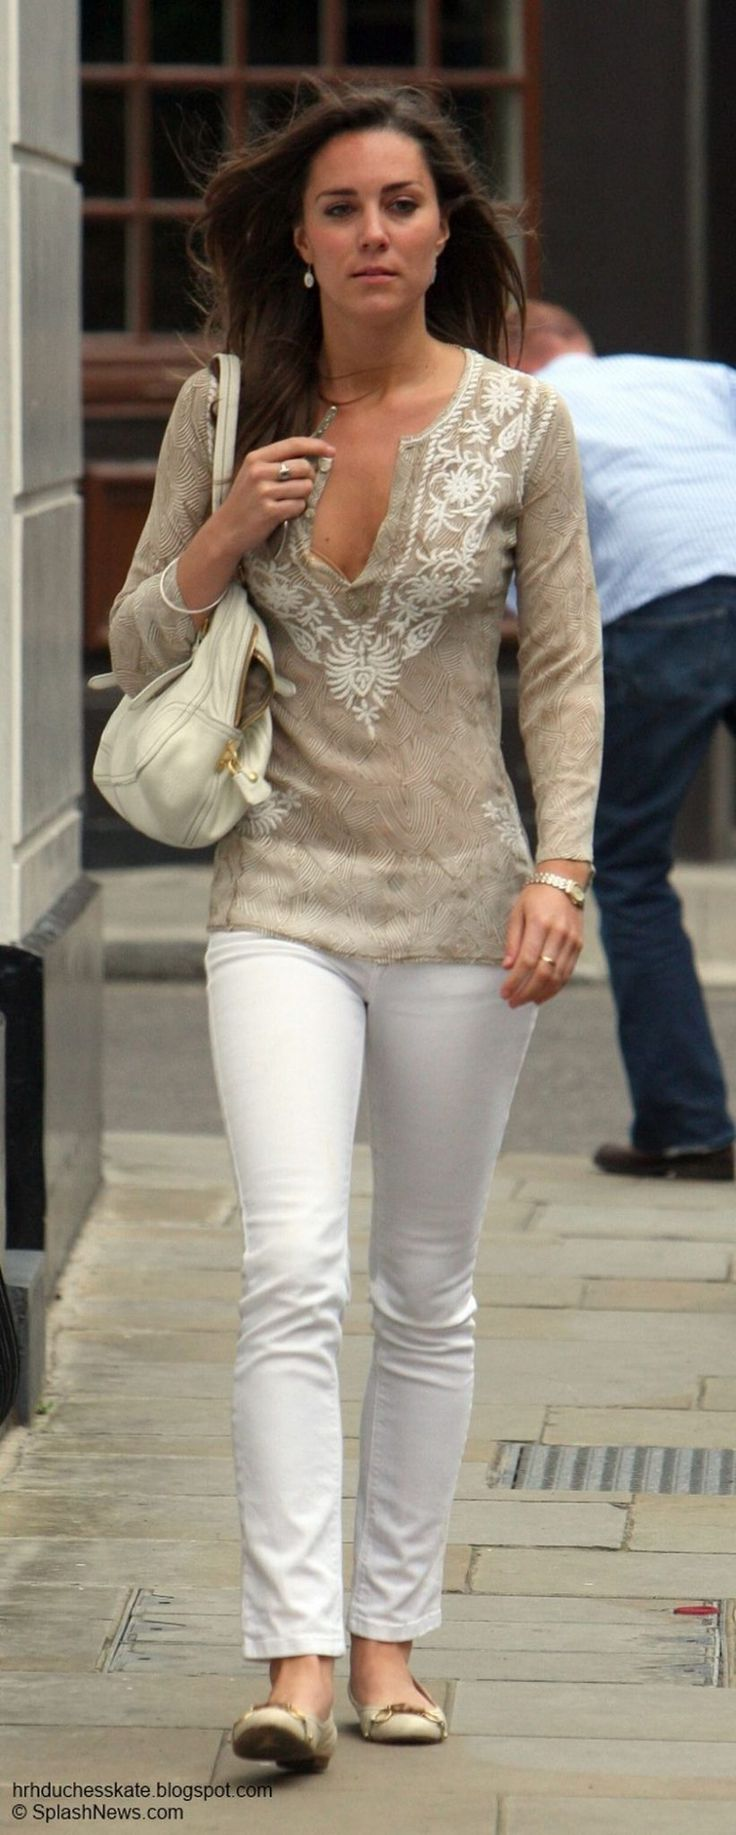 Awesome Kate Middleton Simple Casual Style Outfit Need to Copy https://fasbest.com/awesome-kate-middleton-simple-casual-style-outfit-need-copy/